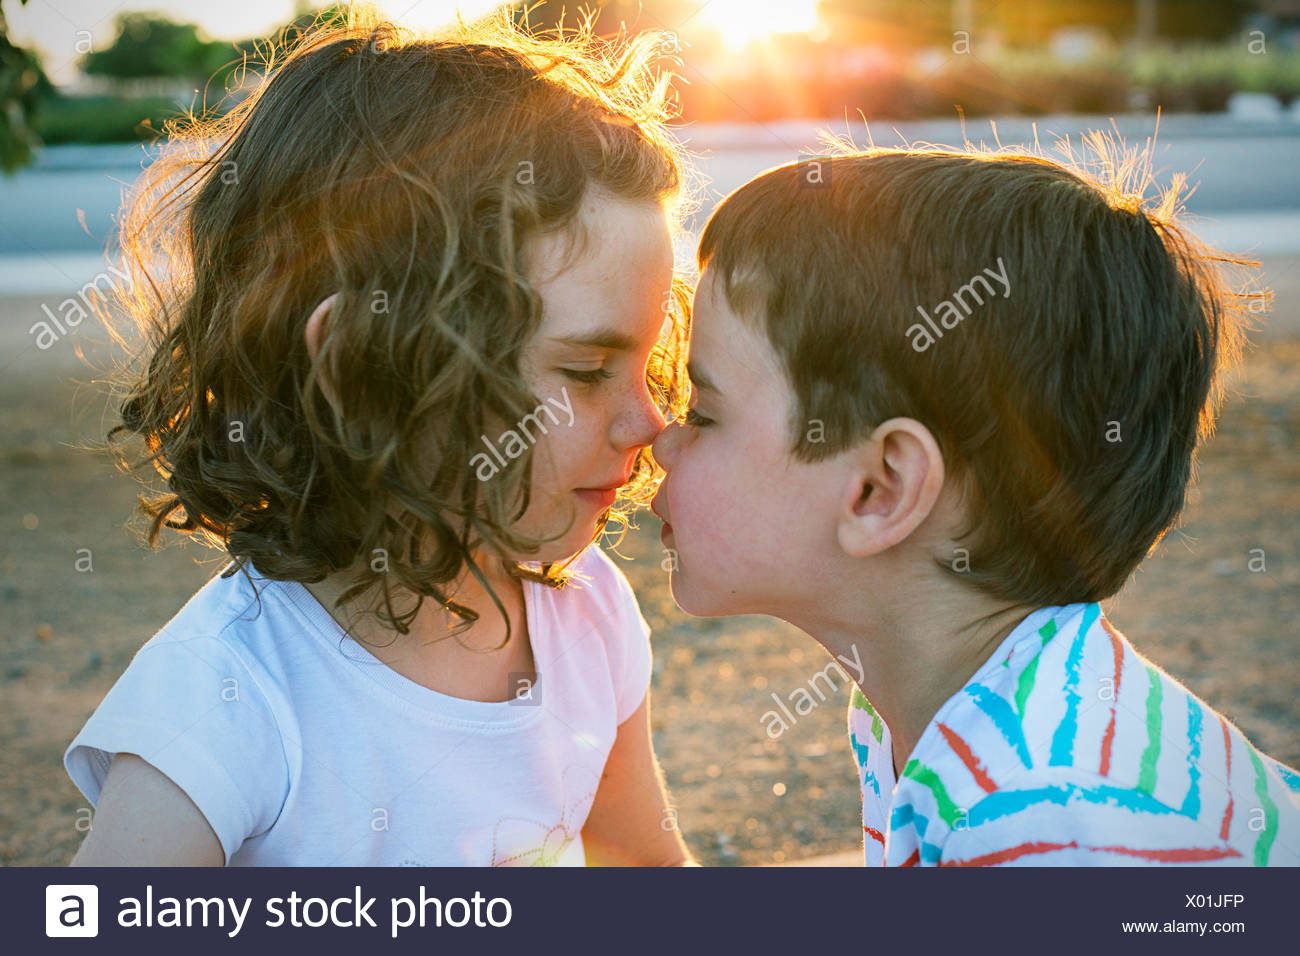 Two children rubbing noses - Stock Image